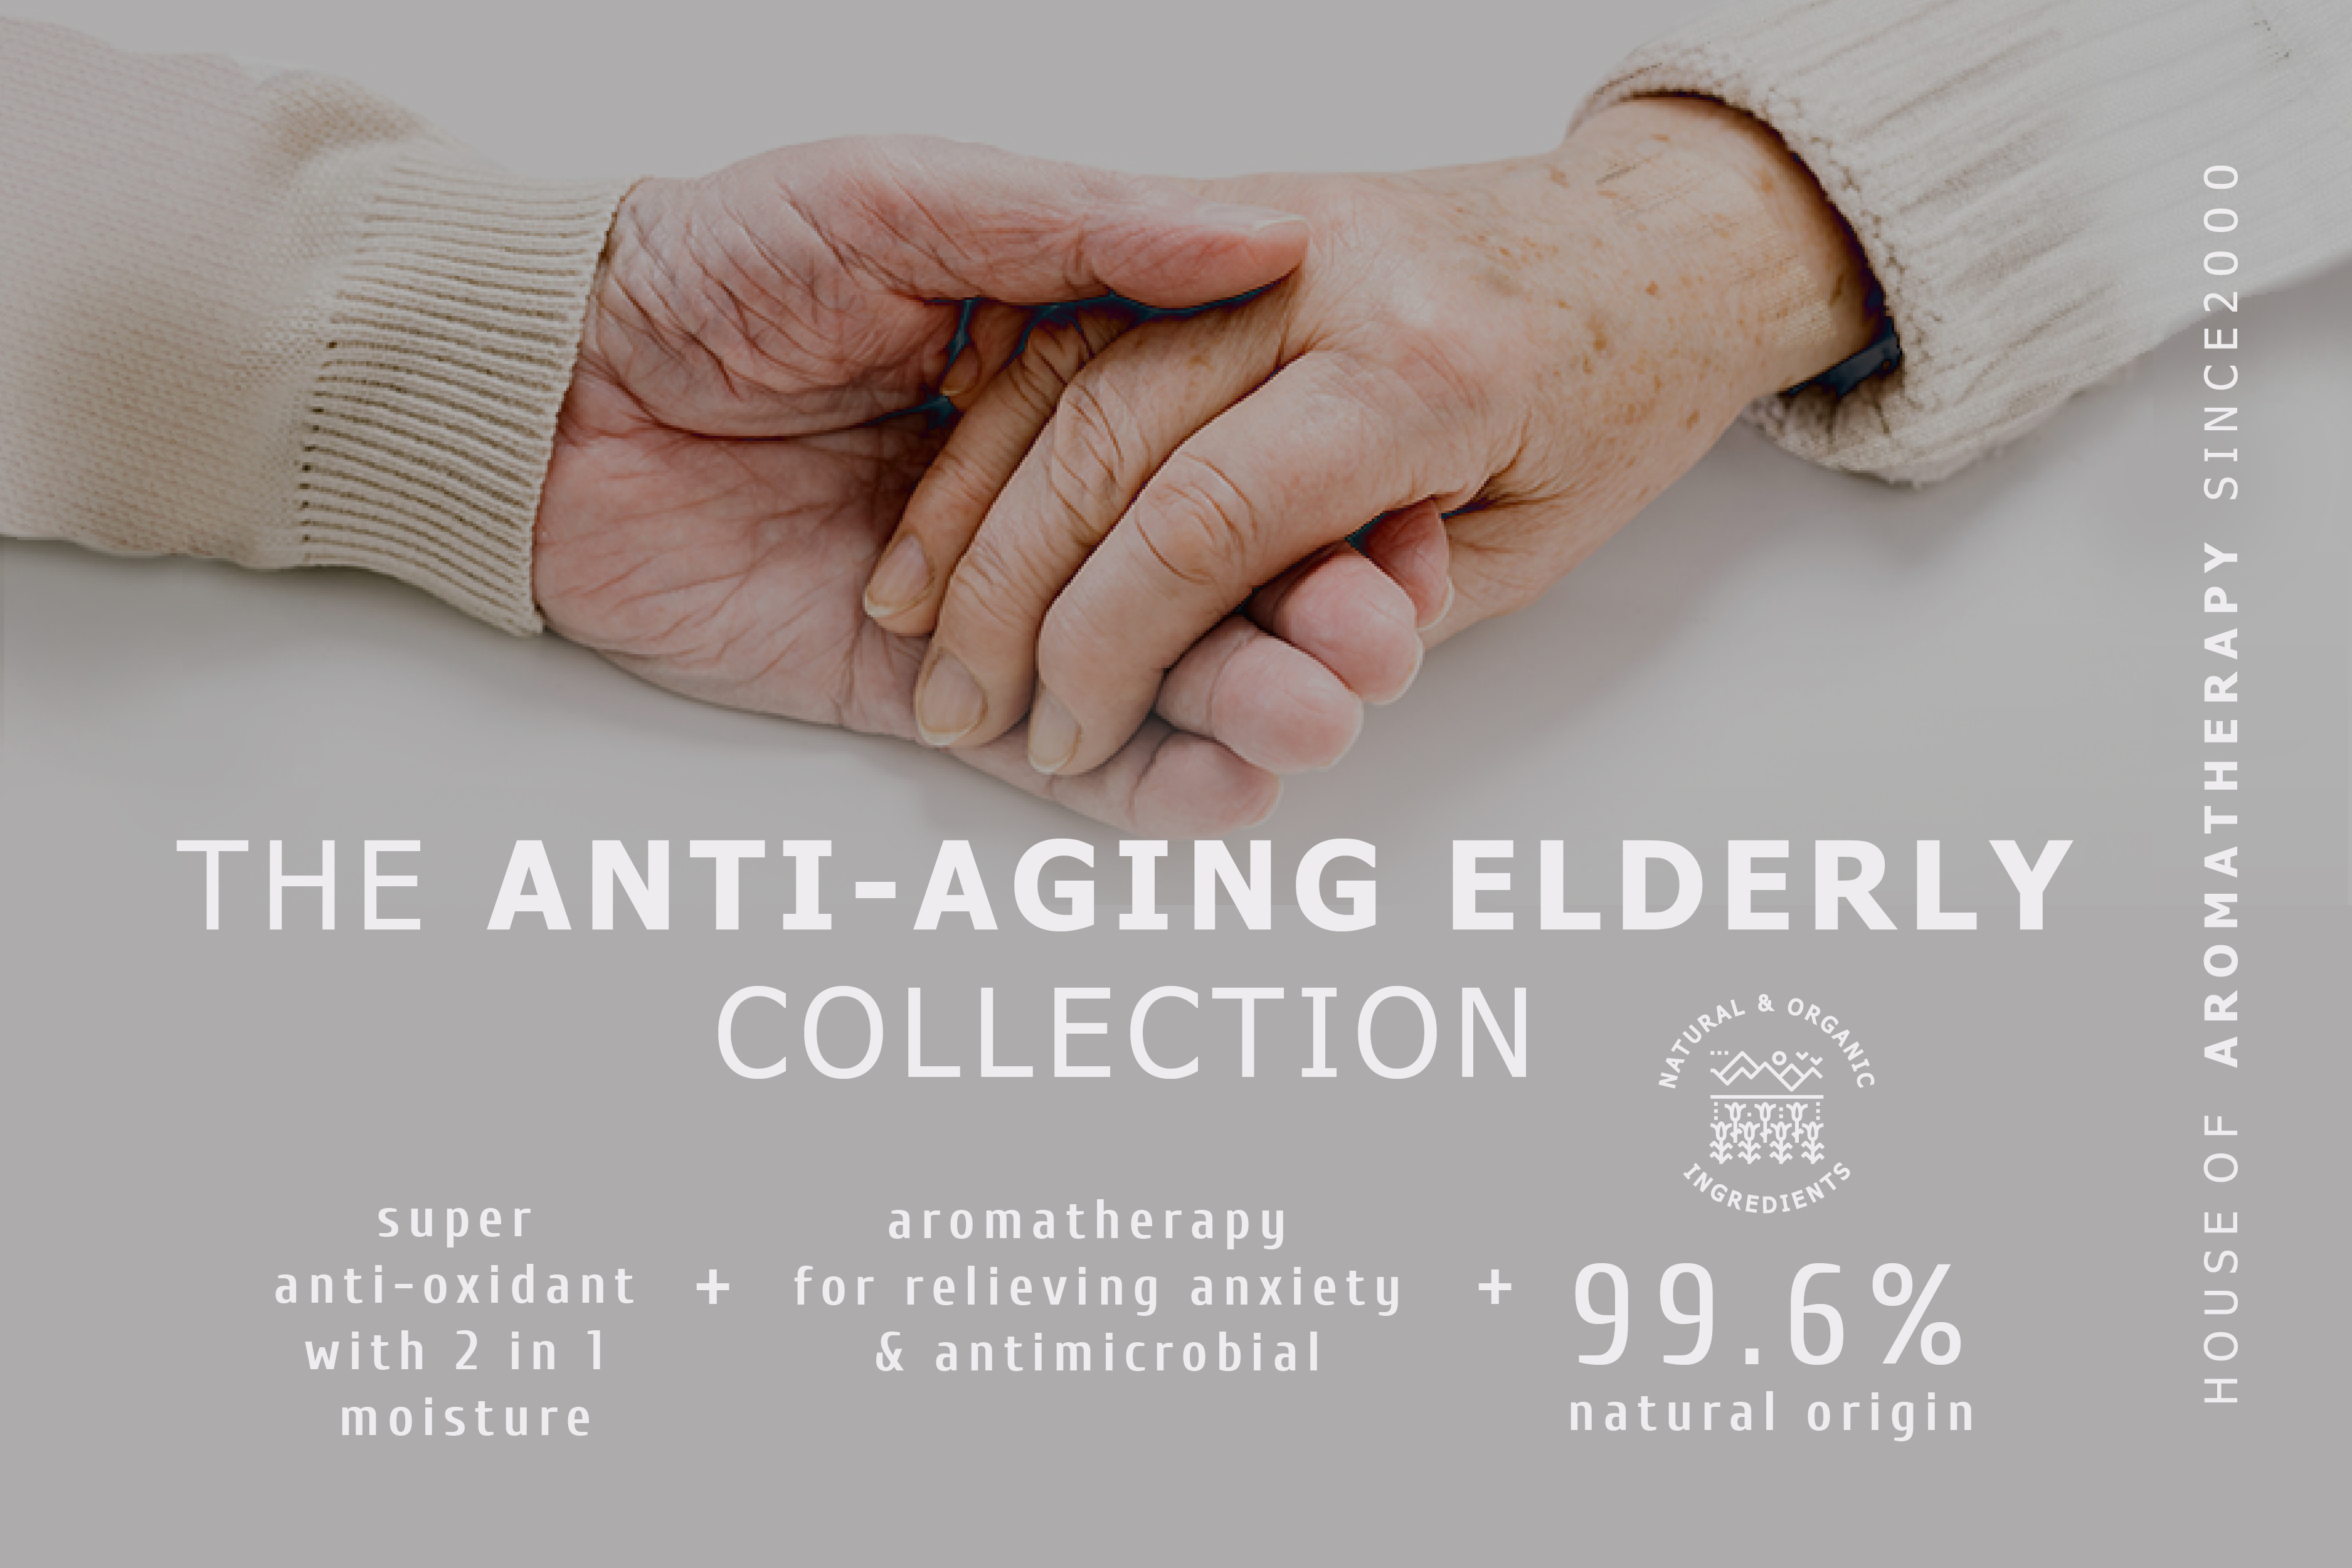 THE ANTI-AGING ELDERLY COLLECTION